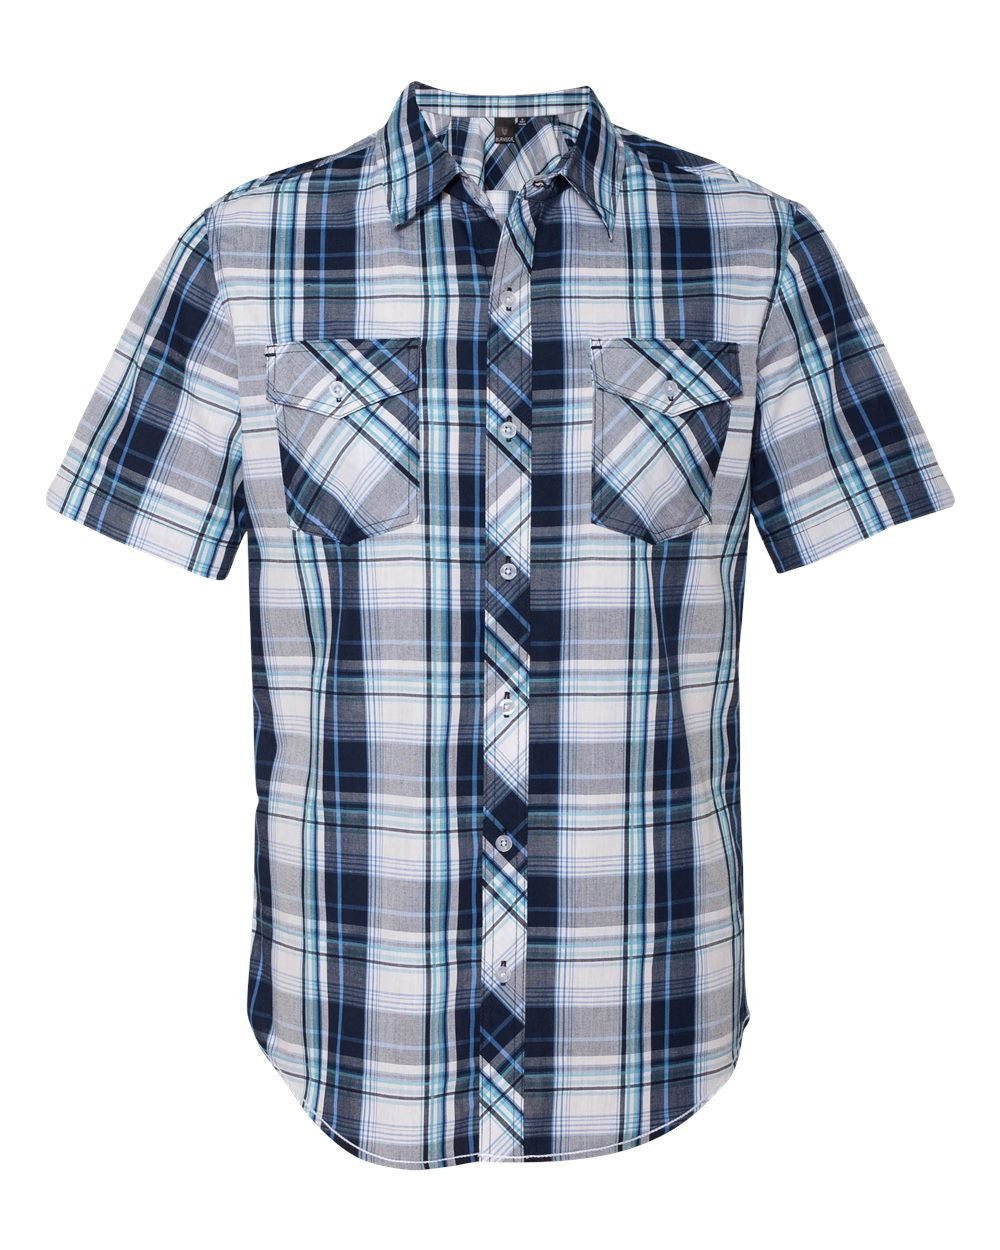 Burnside Dress Shirts with extended sizings - Discountedrack.com